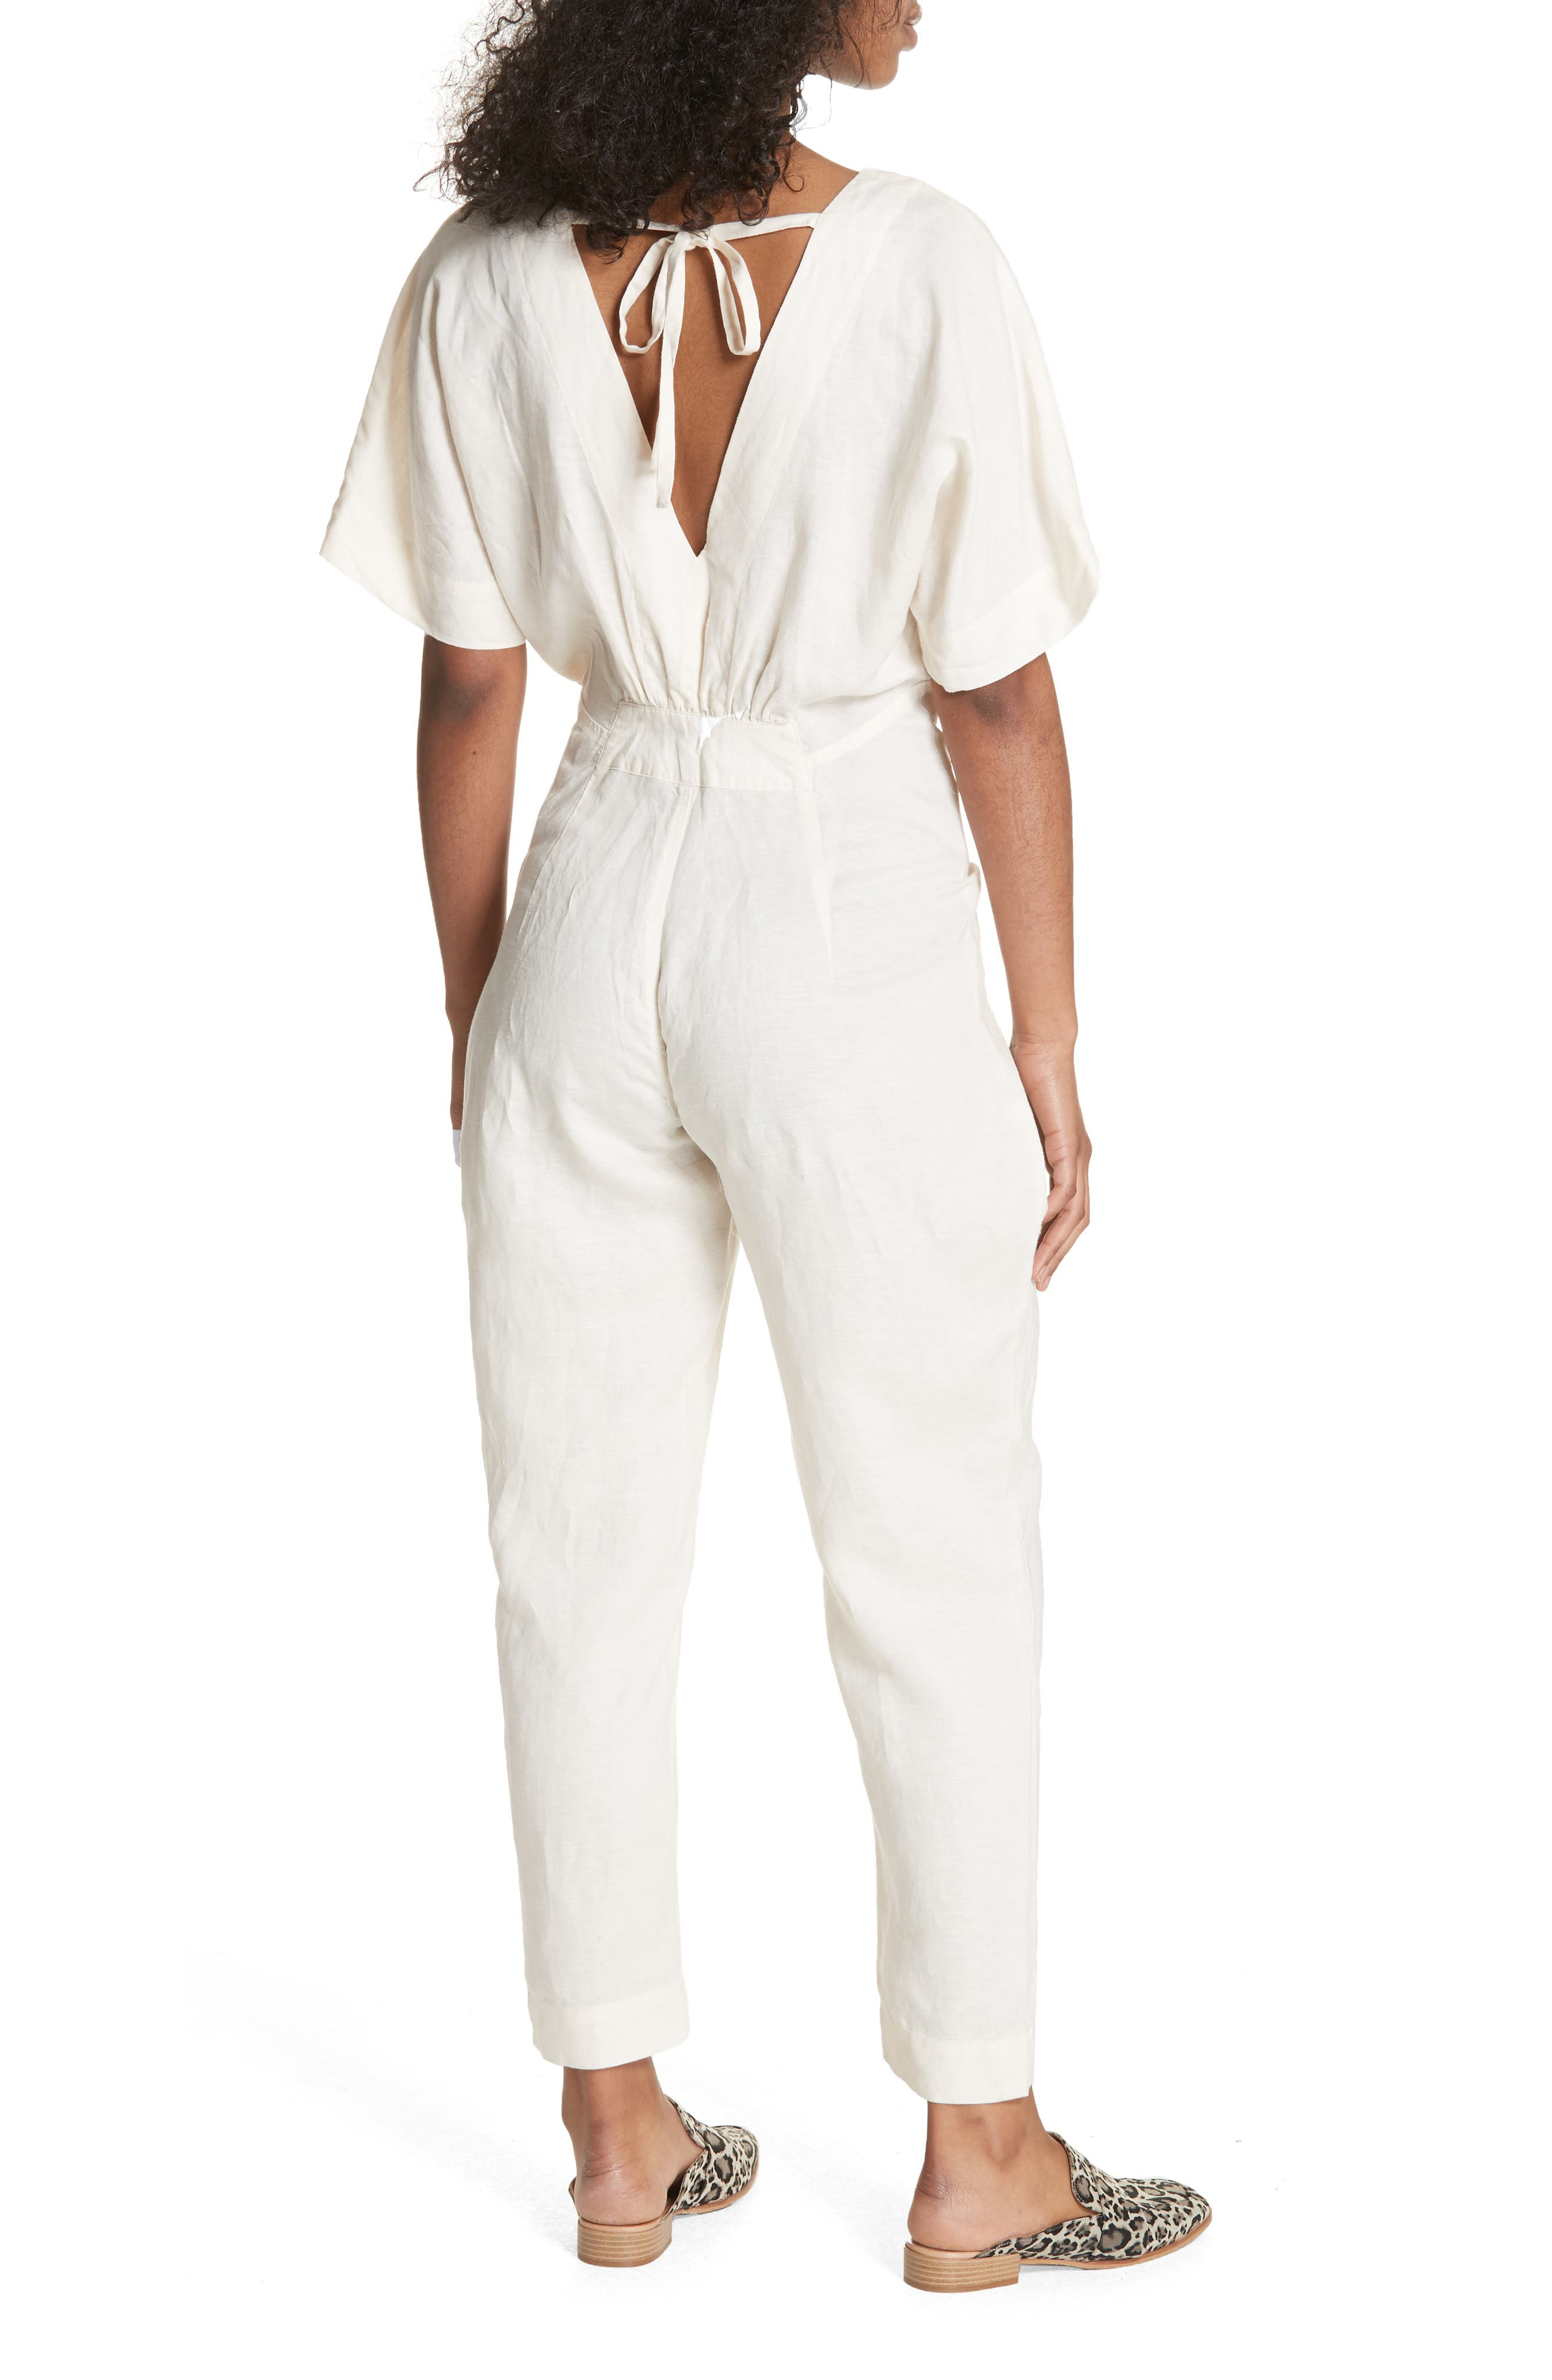 Shining Sun Tie Front Jumpsuit,                             Alternate thumbnail 2, color,                             Ivory